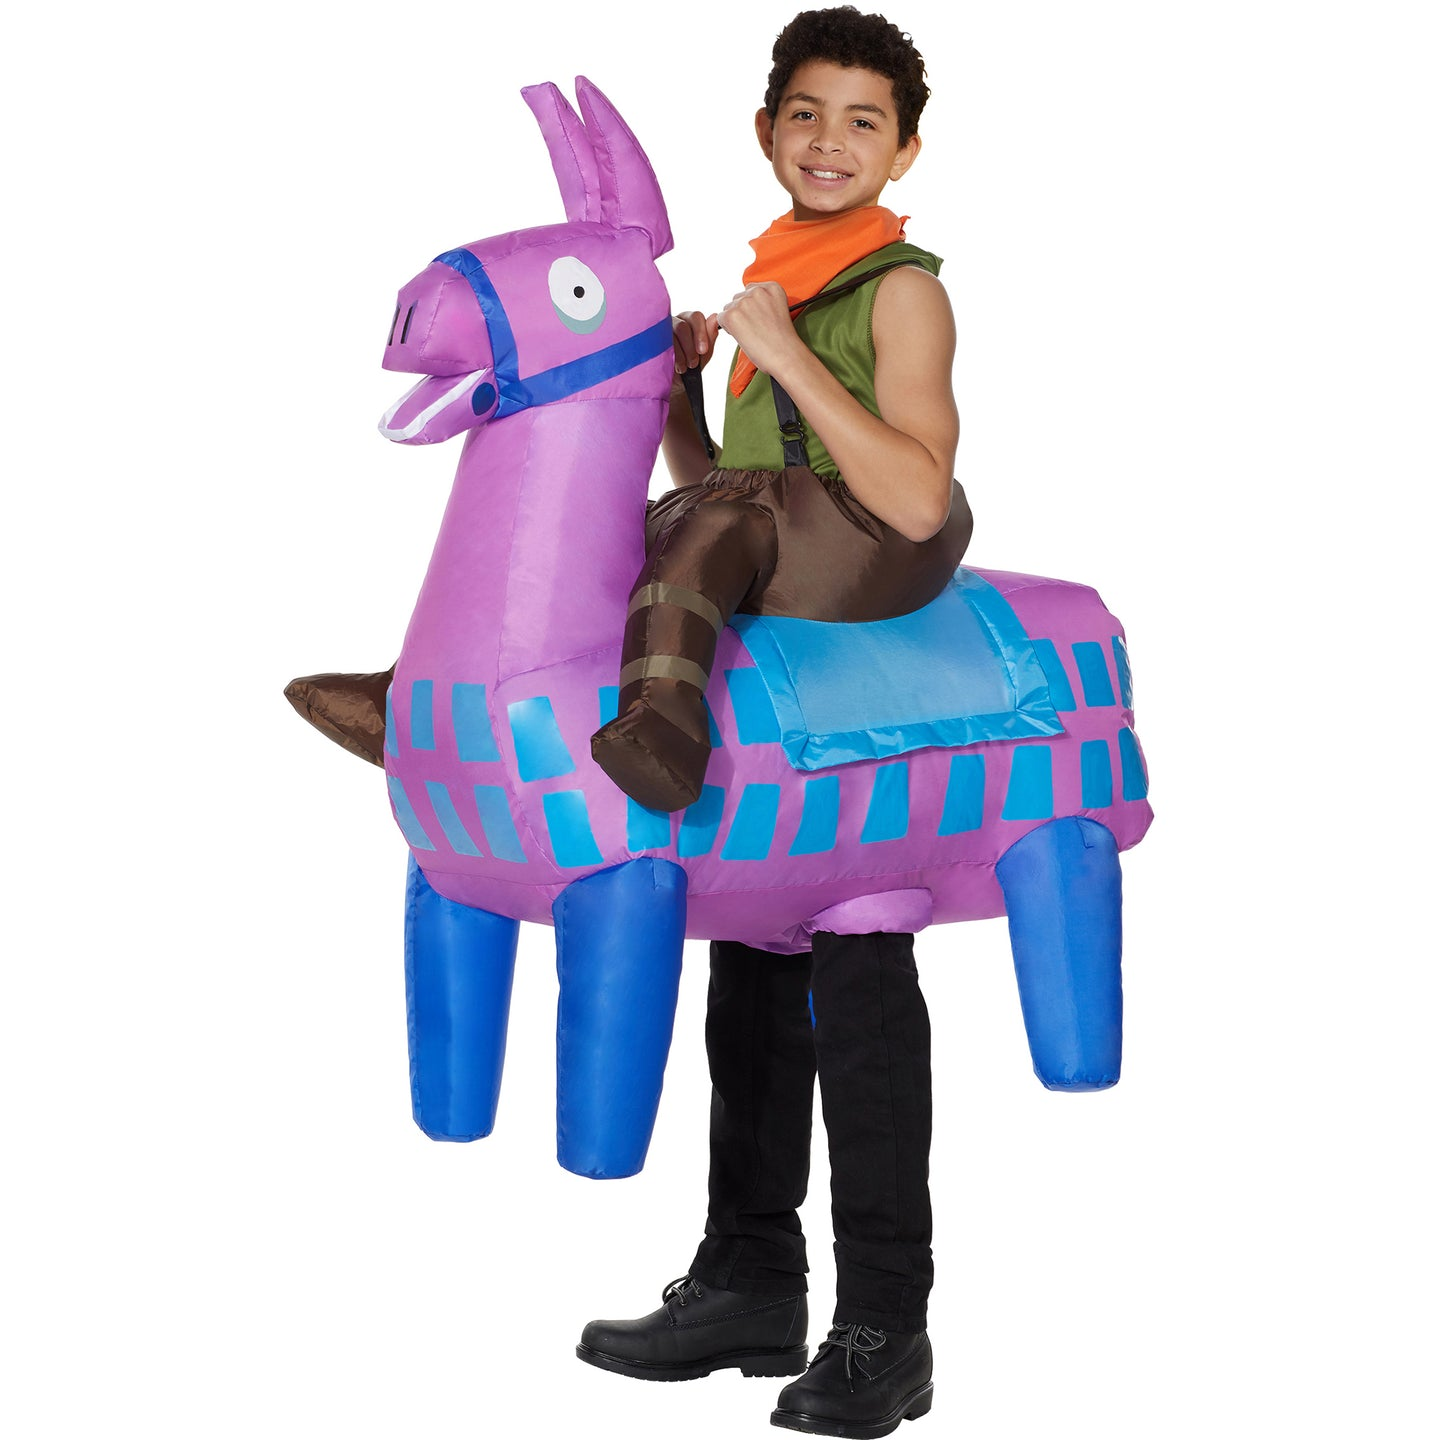 GIDDY-UP YOUTH 105062